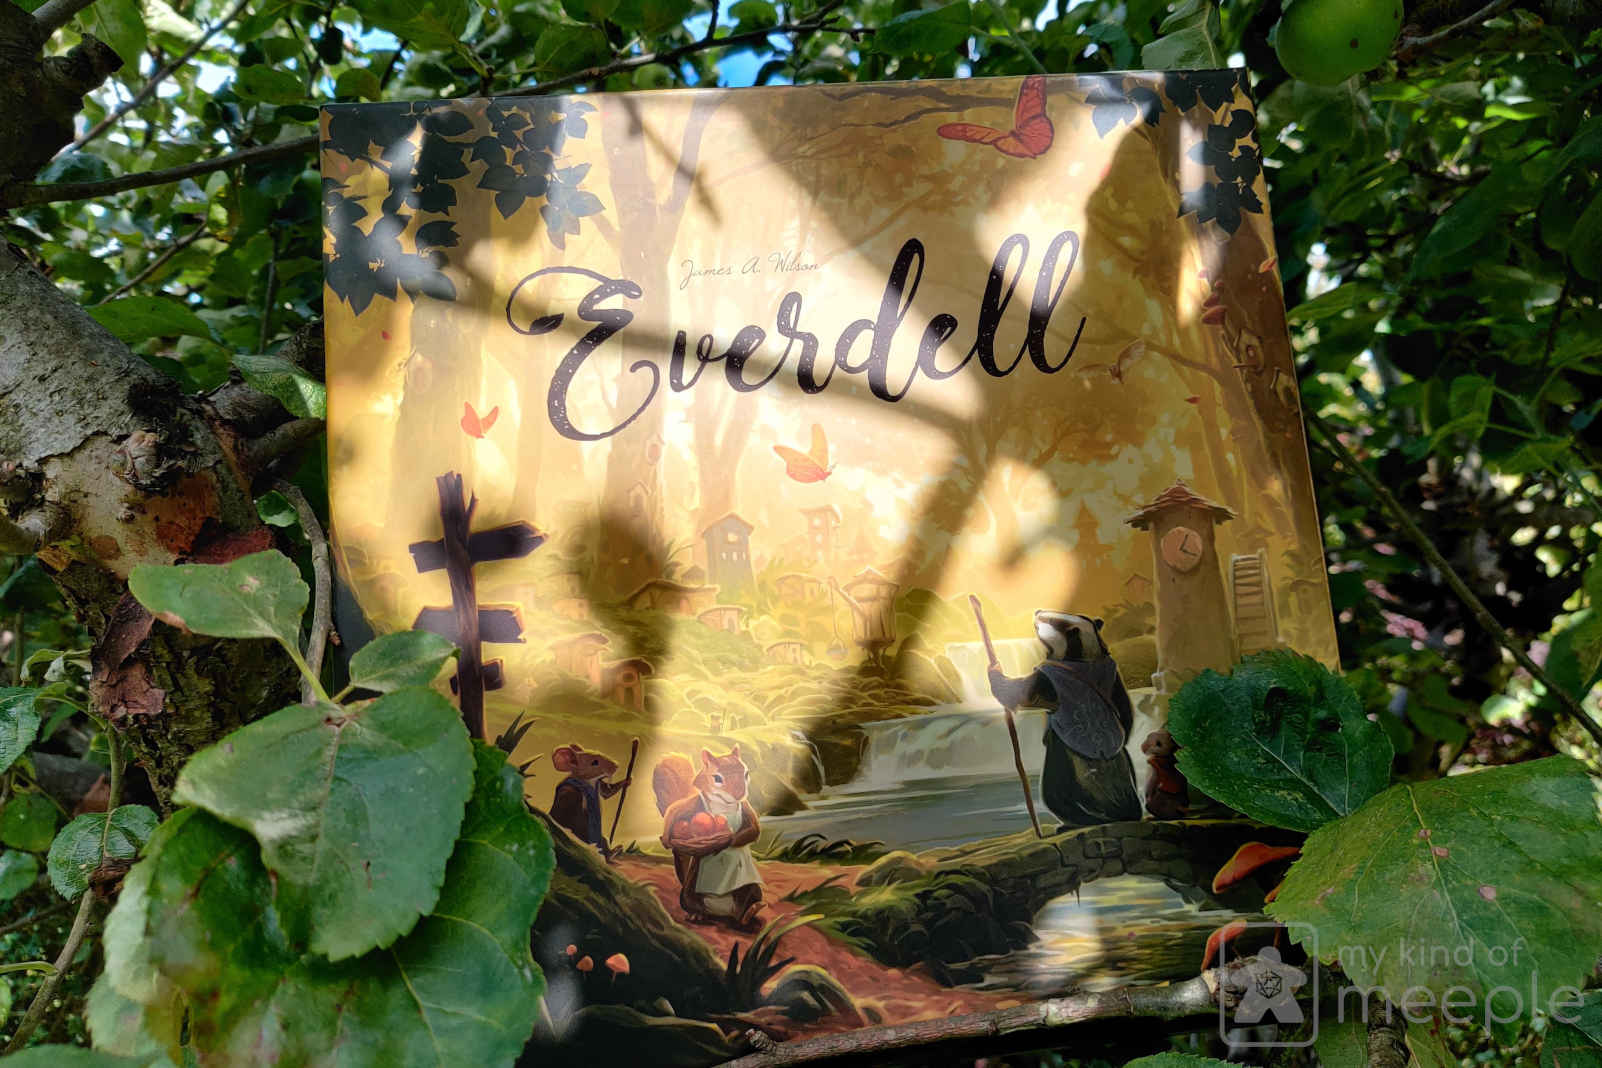 Everdell board game box in tree